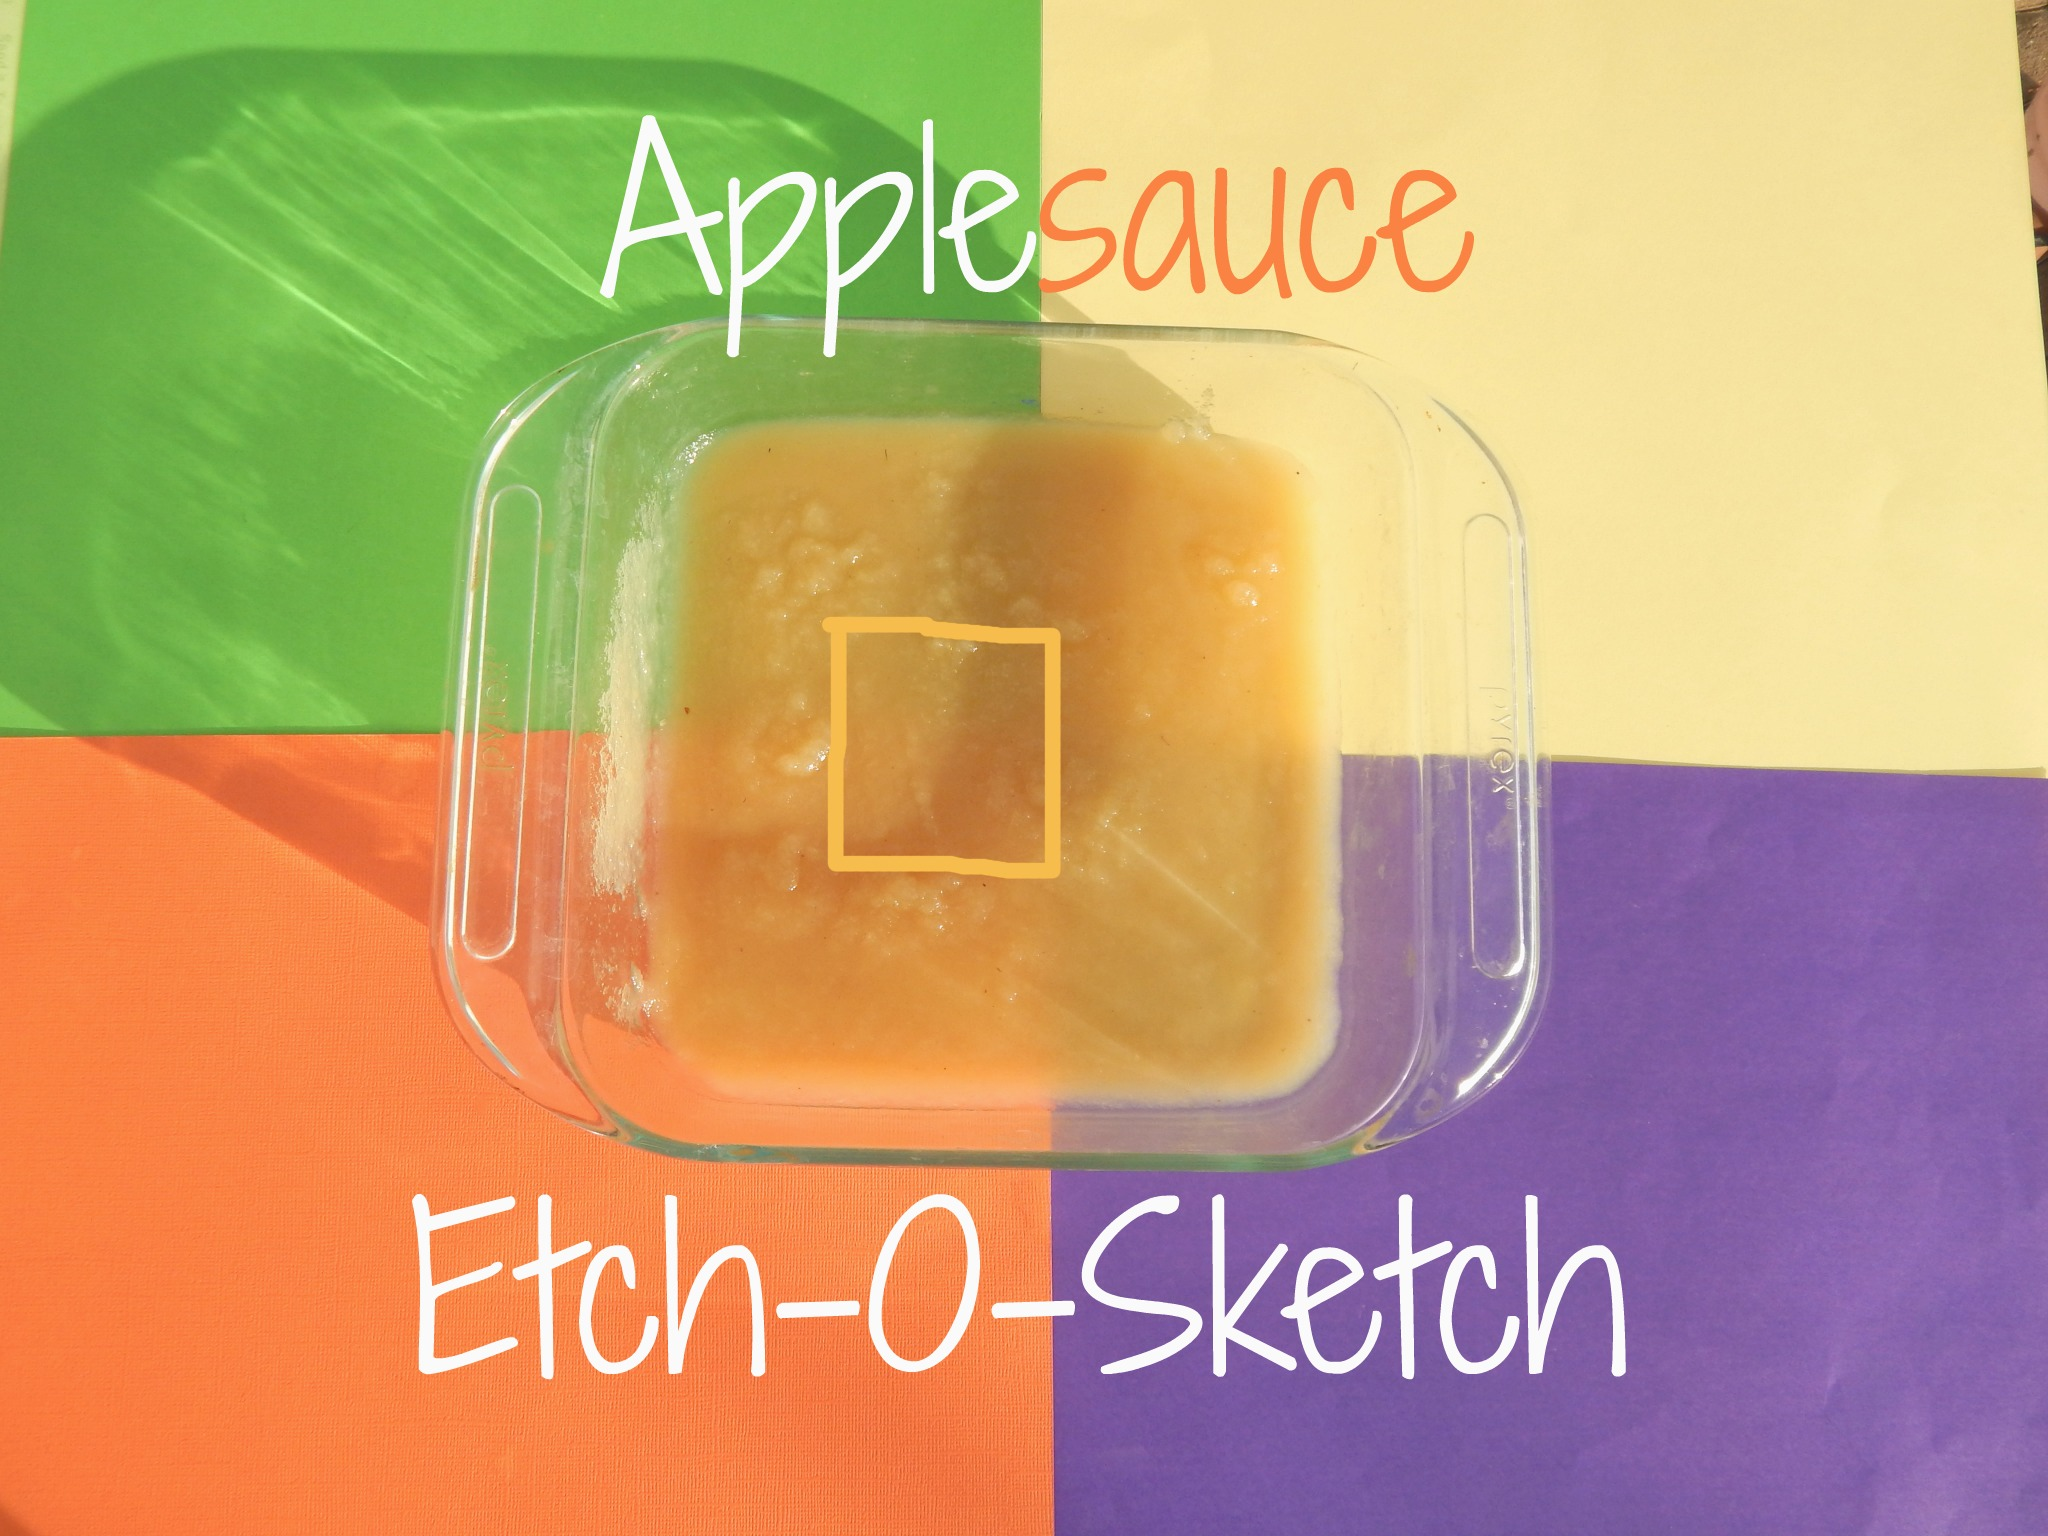 Applesauce Etch O Sketch